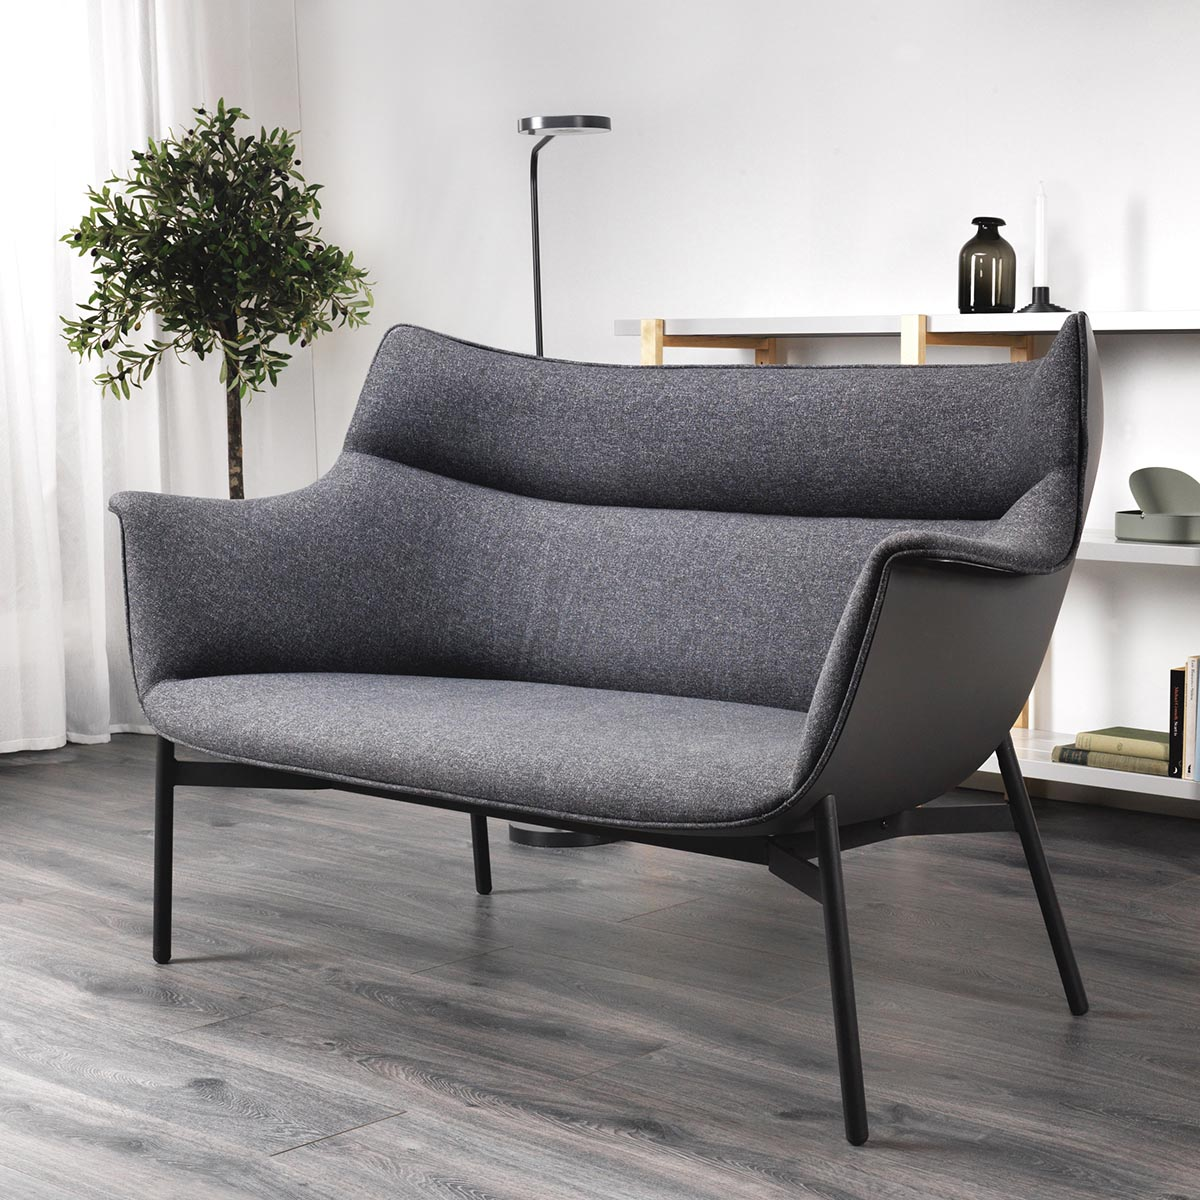 first look ikea x hay ypperlig collection democratic design day grey hay sofa cate st hill. Black Bedroom Furniture Sets. Home Design Ideas